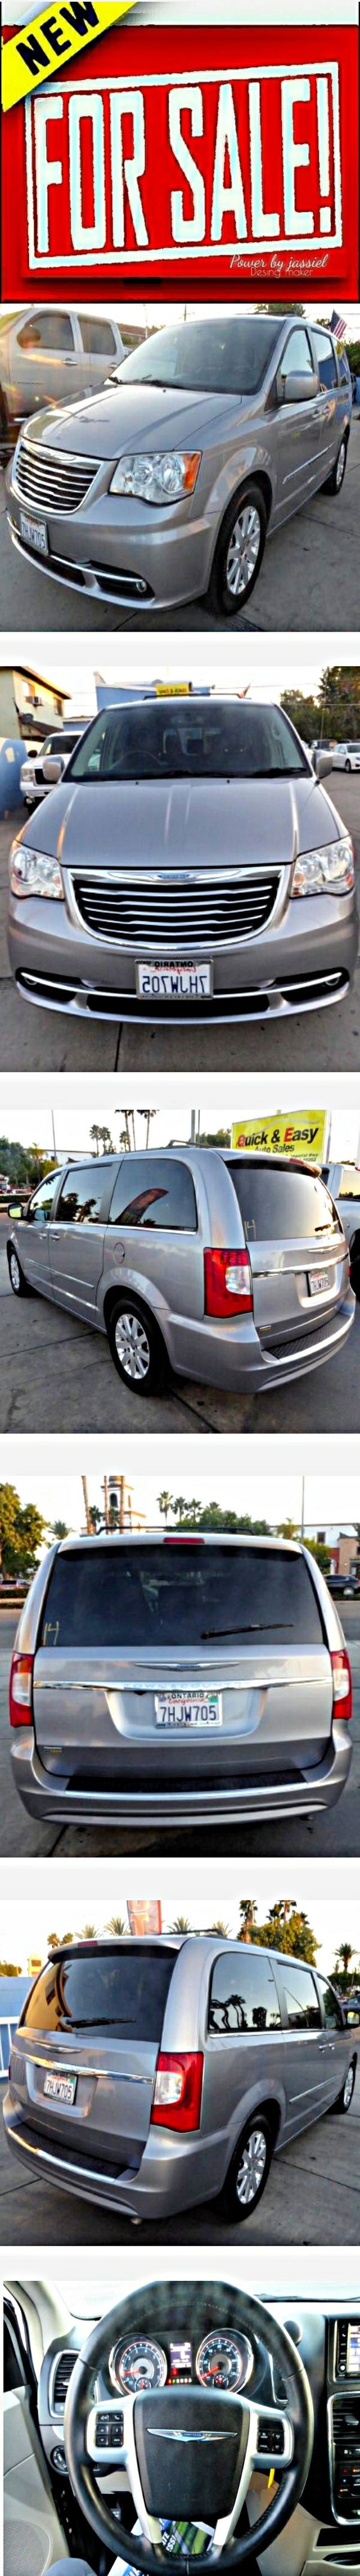 2014 chrysler town country touring cars trucks in south gate ca offerup